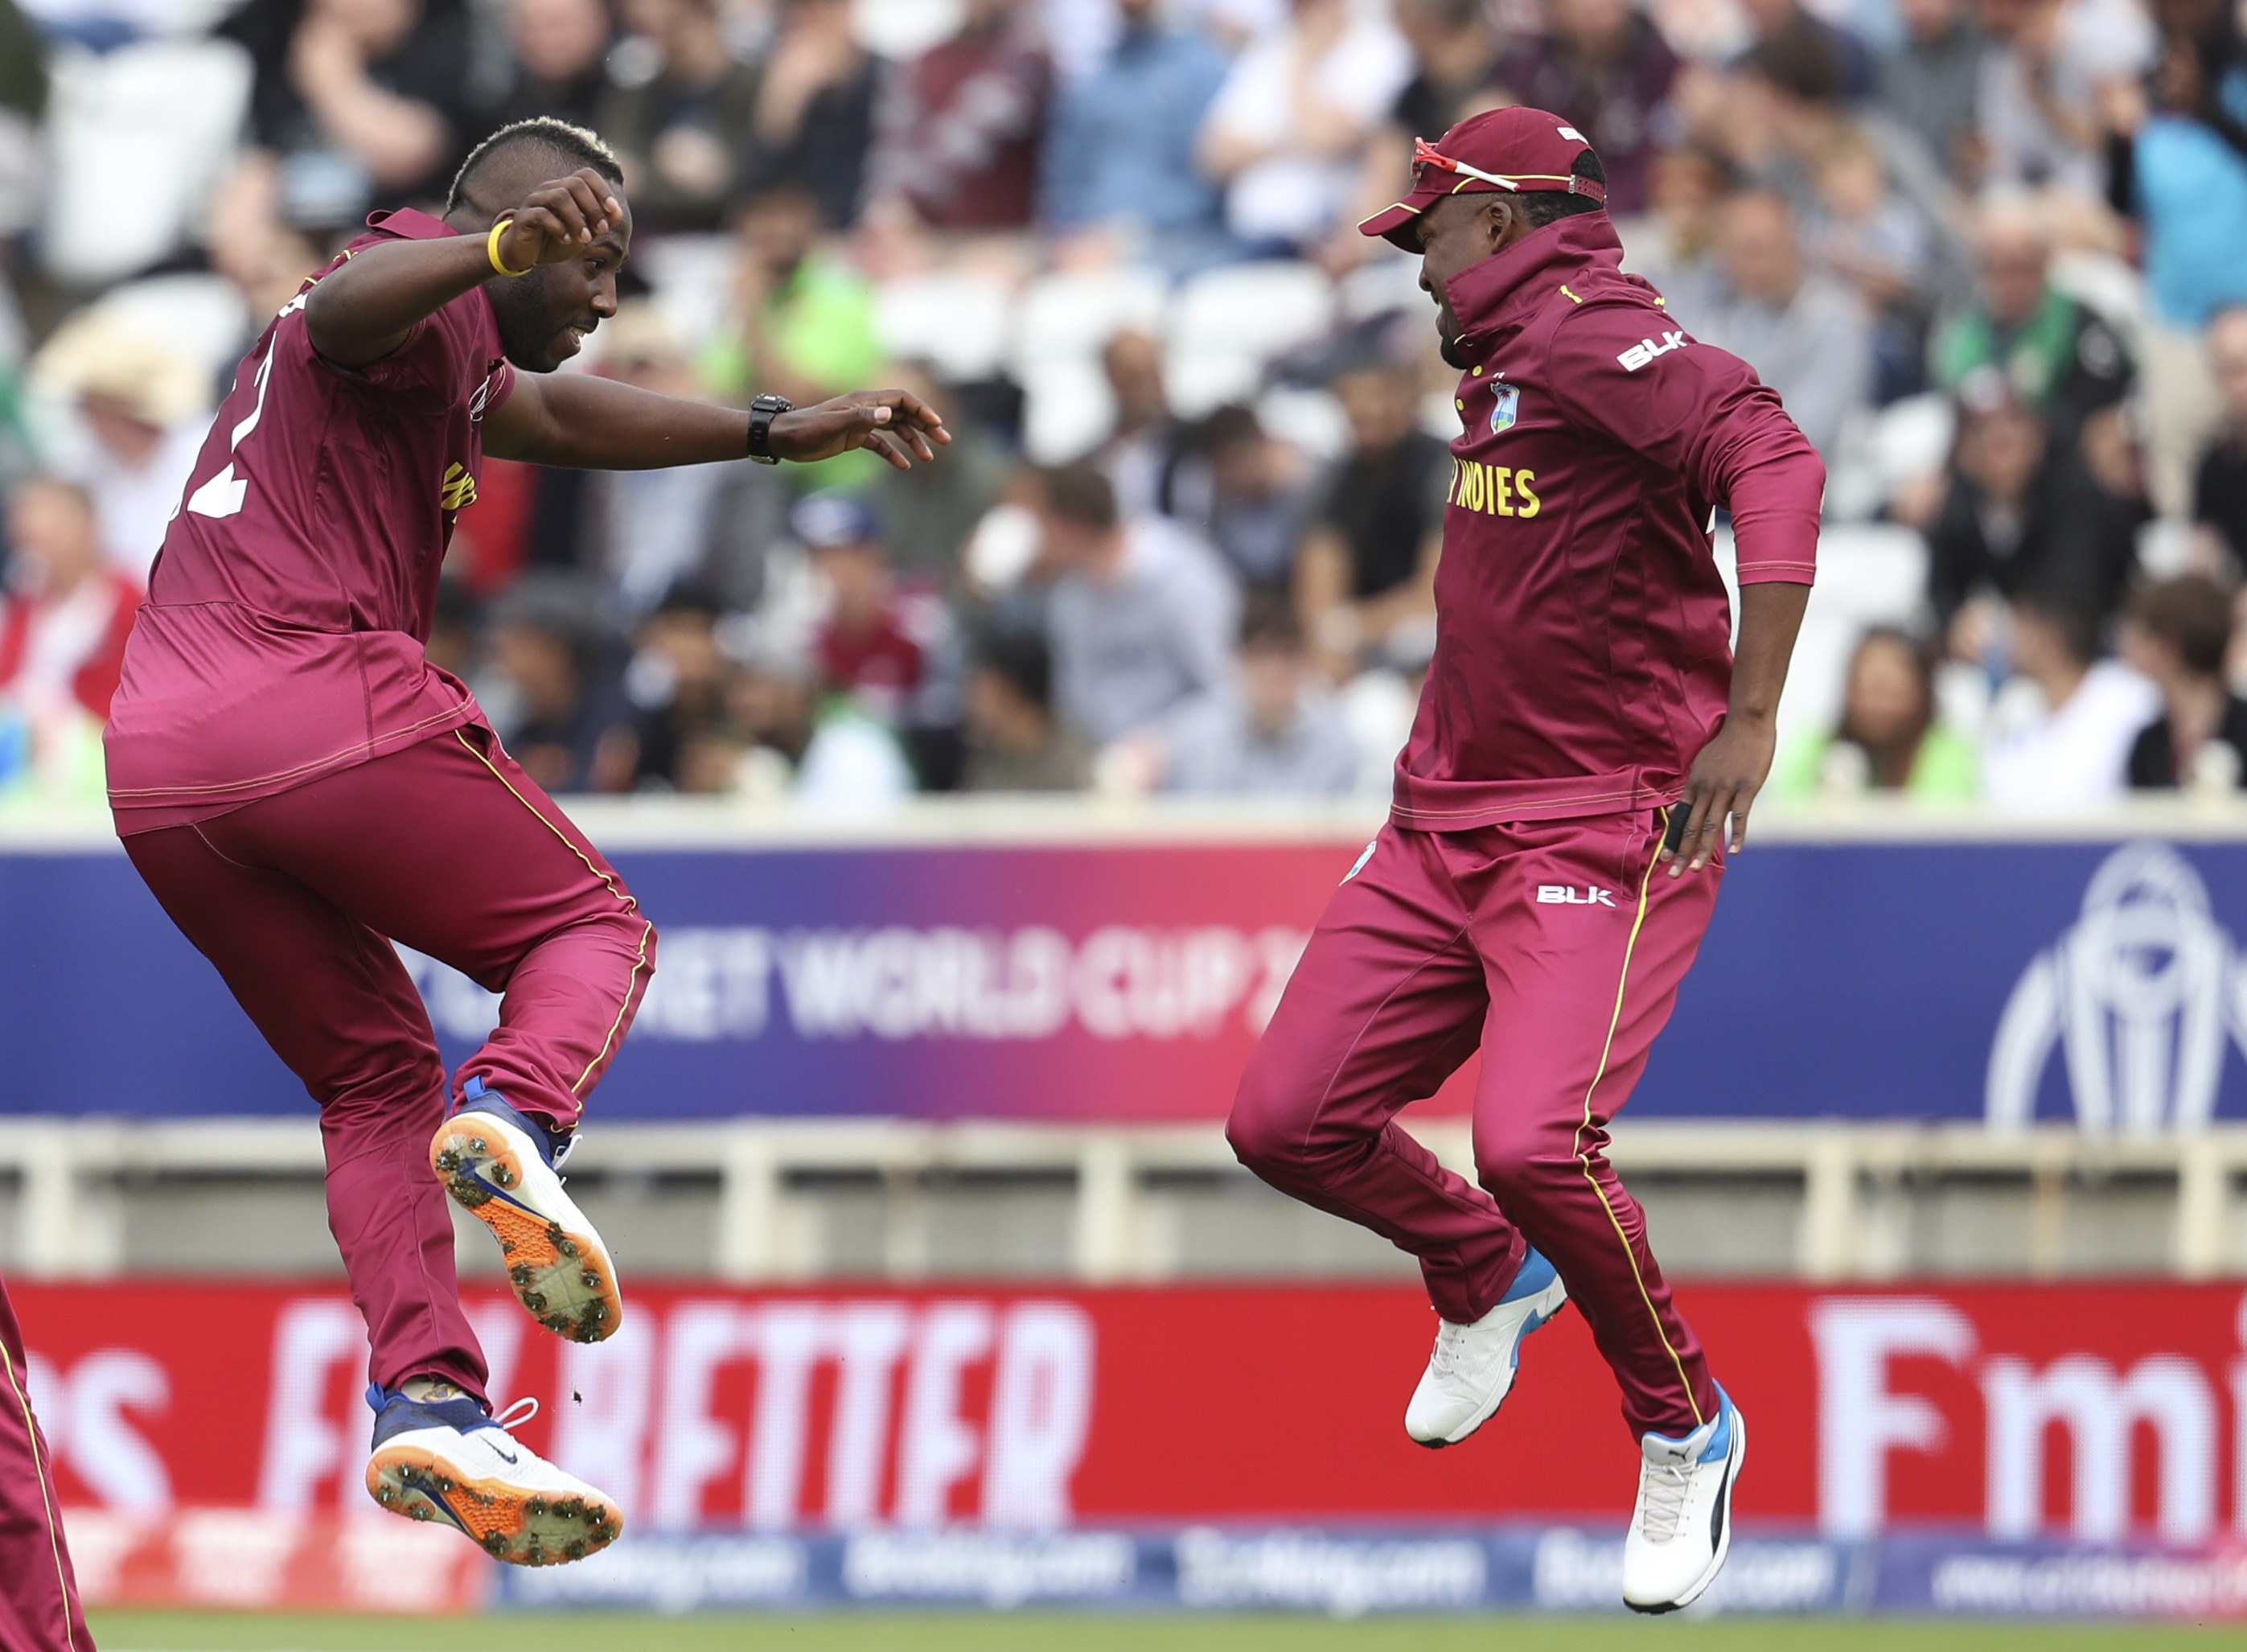 West Indies' bowler Andre Russell (left) celebrates with Darren Bravo taking the wicket of Pakistan's Haris Sohail at Trent Bridge on  May 31.